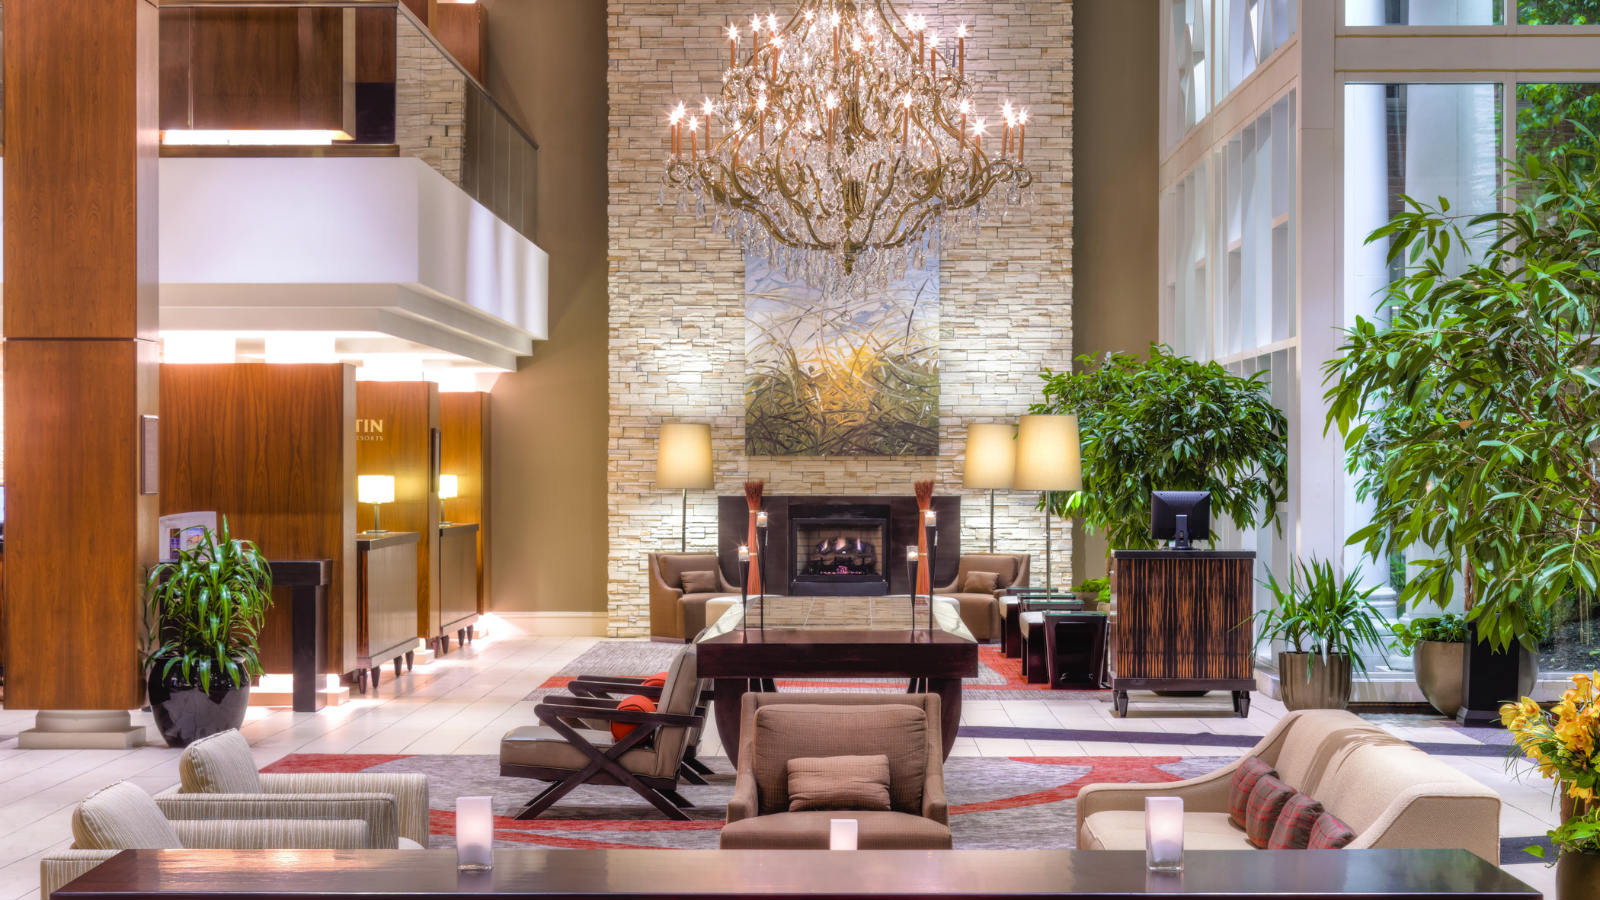 The Westin Governor Morris Morristown Lobby